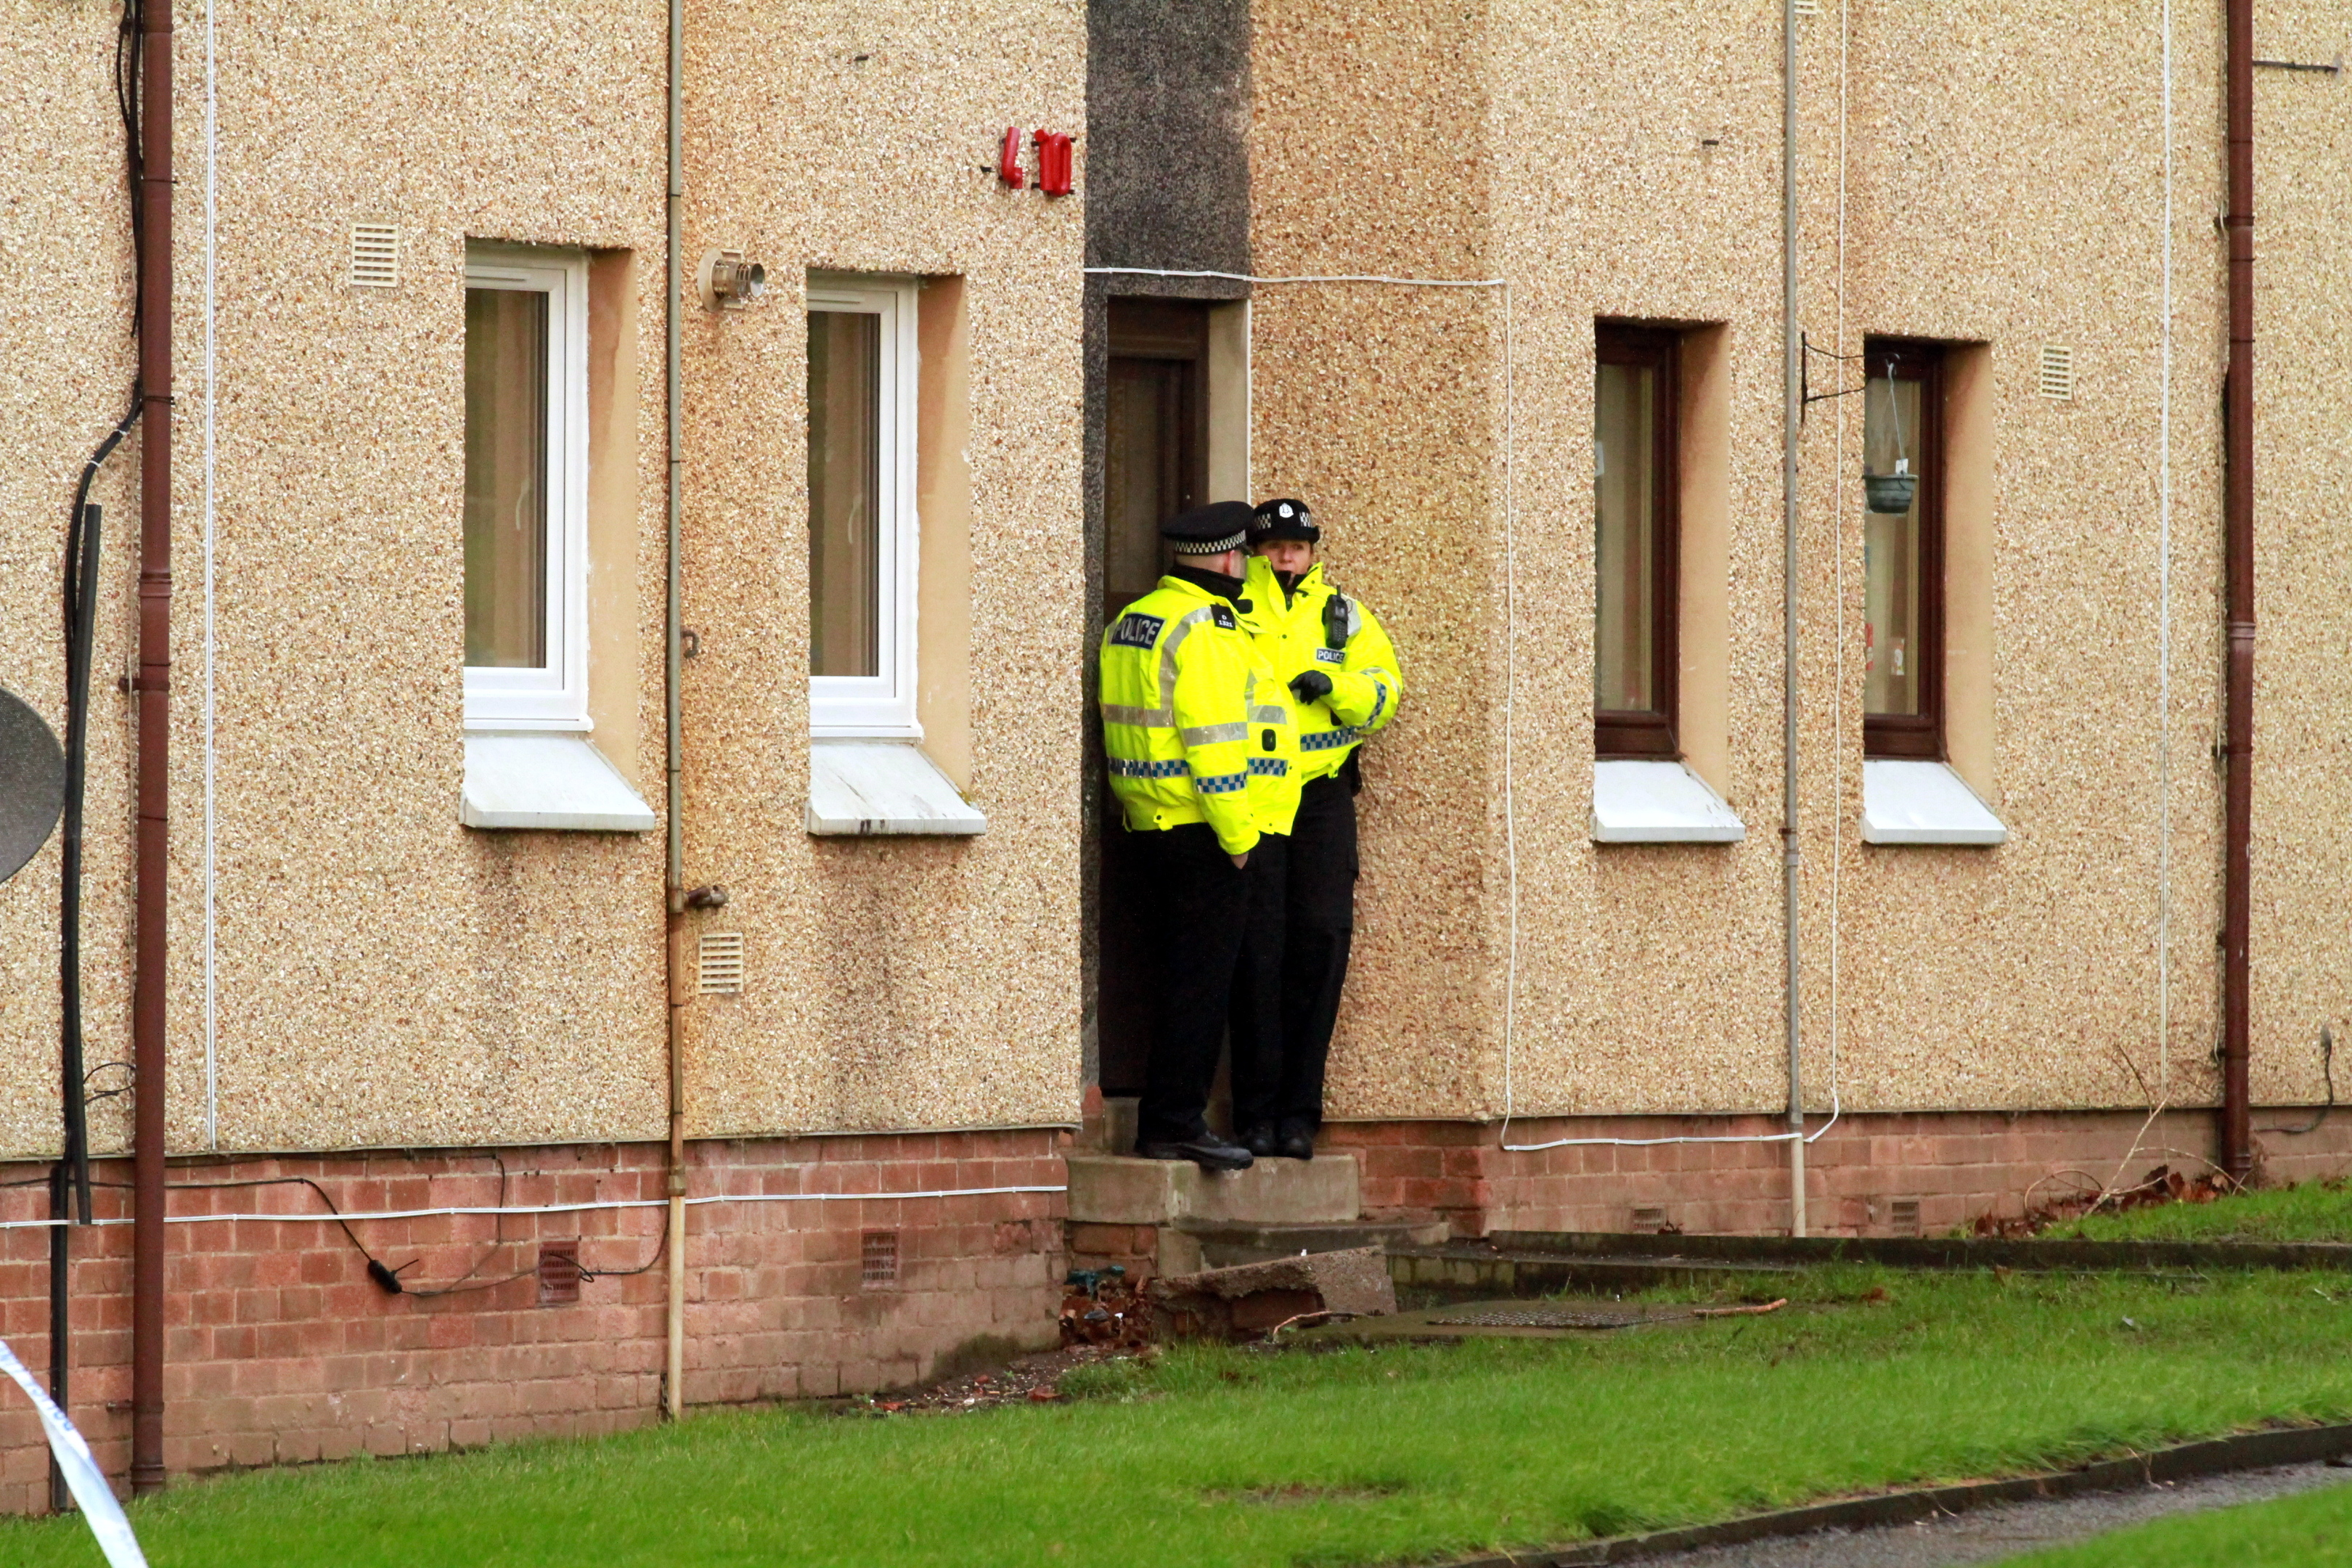 Police guard the door of a block of flats on Thurso Crescent, where Aigars Upieneks' body was found.